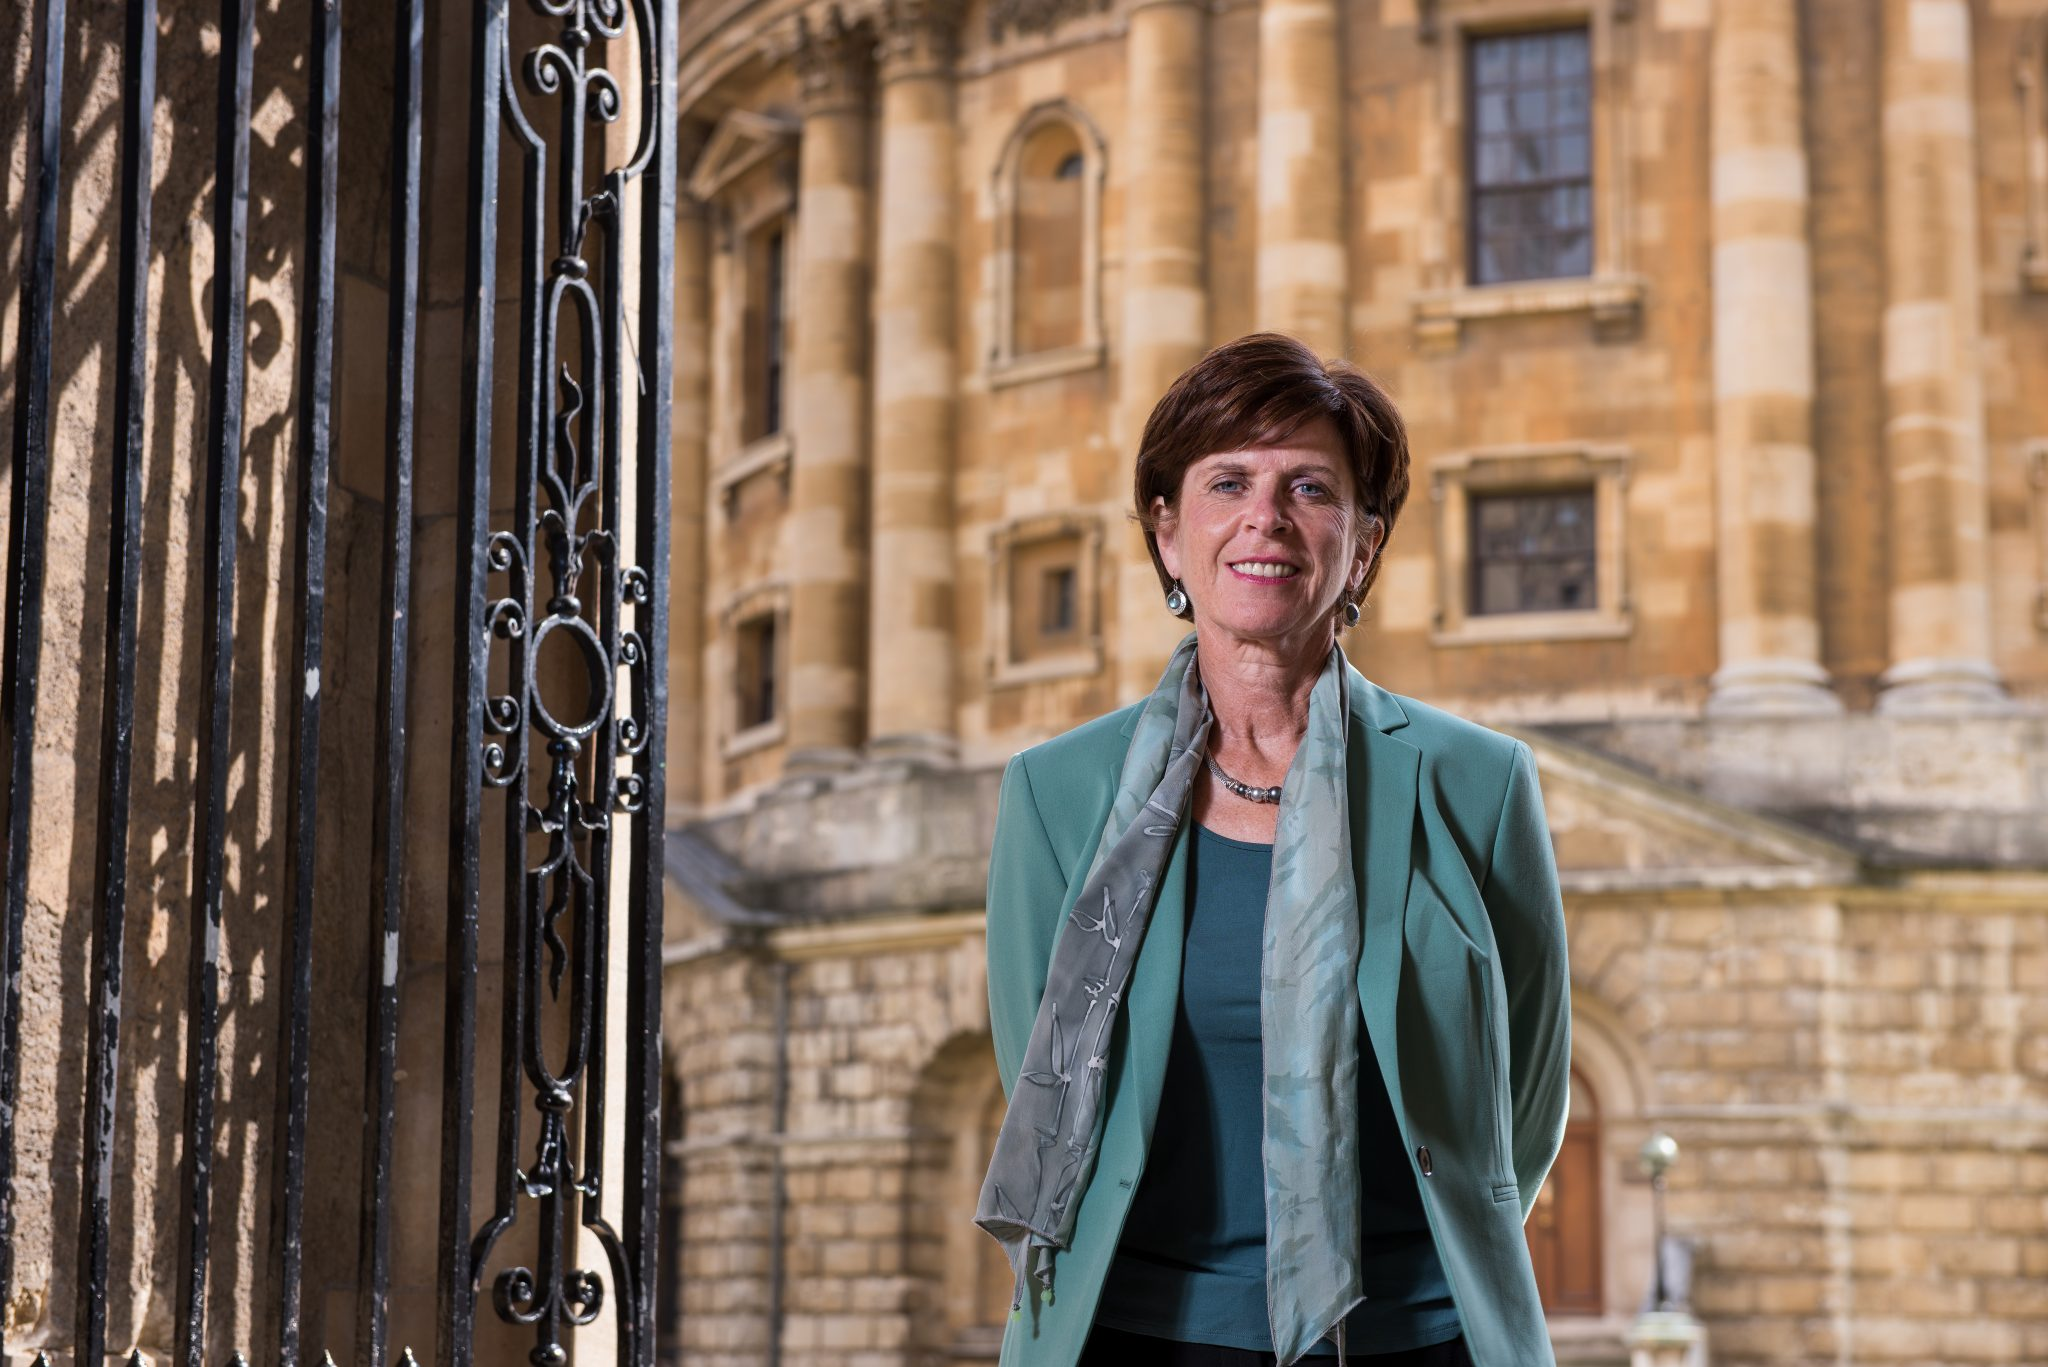 Vice-Chancellor's safe space stance under spotlight